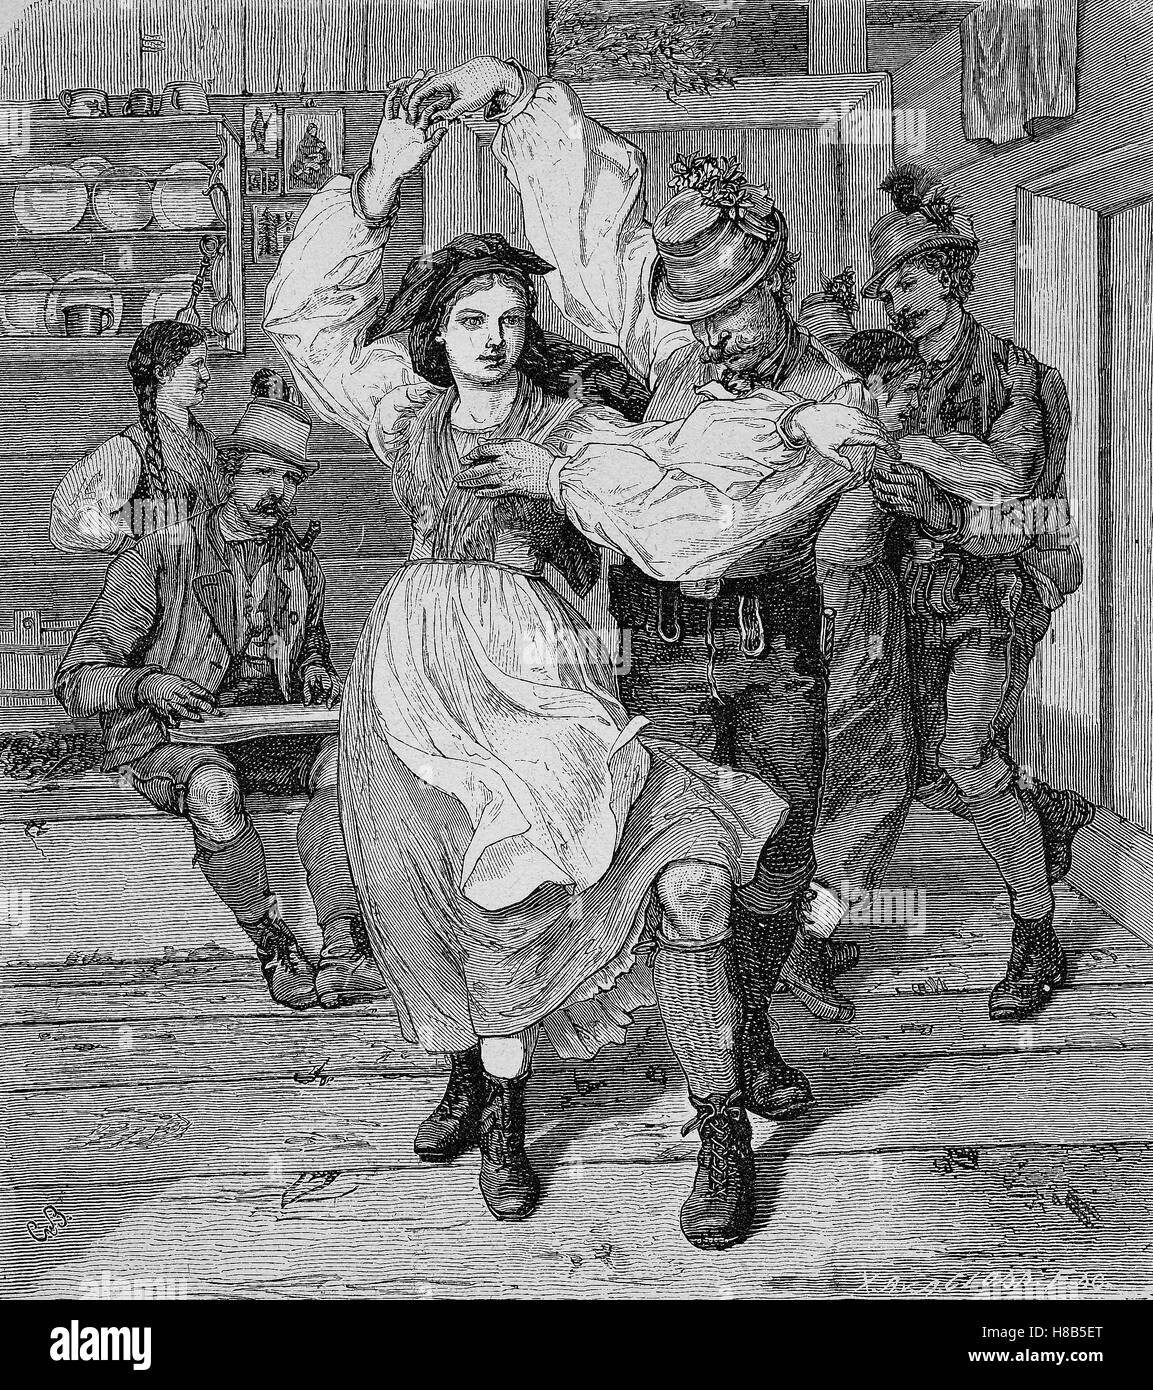 folk dance in Steyr, Austria, Woodcut from 1892 - Stock Image